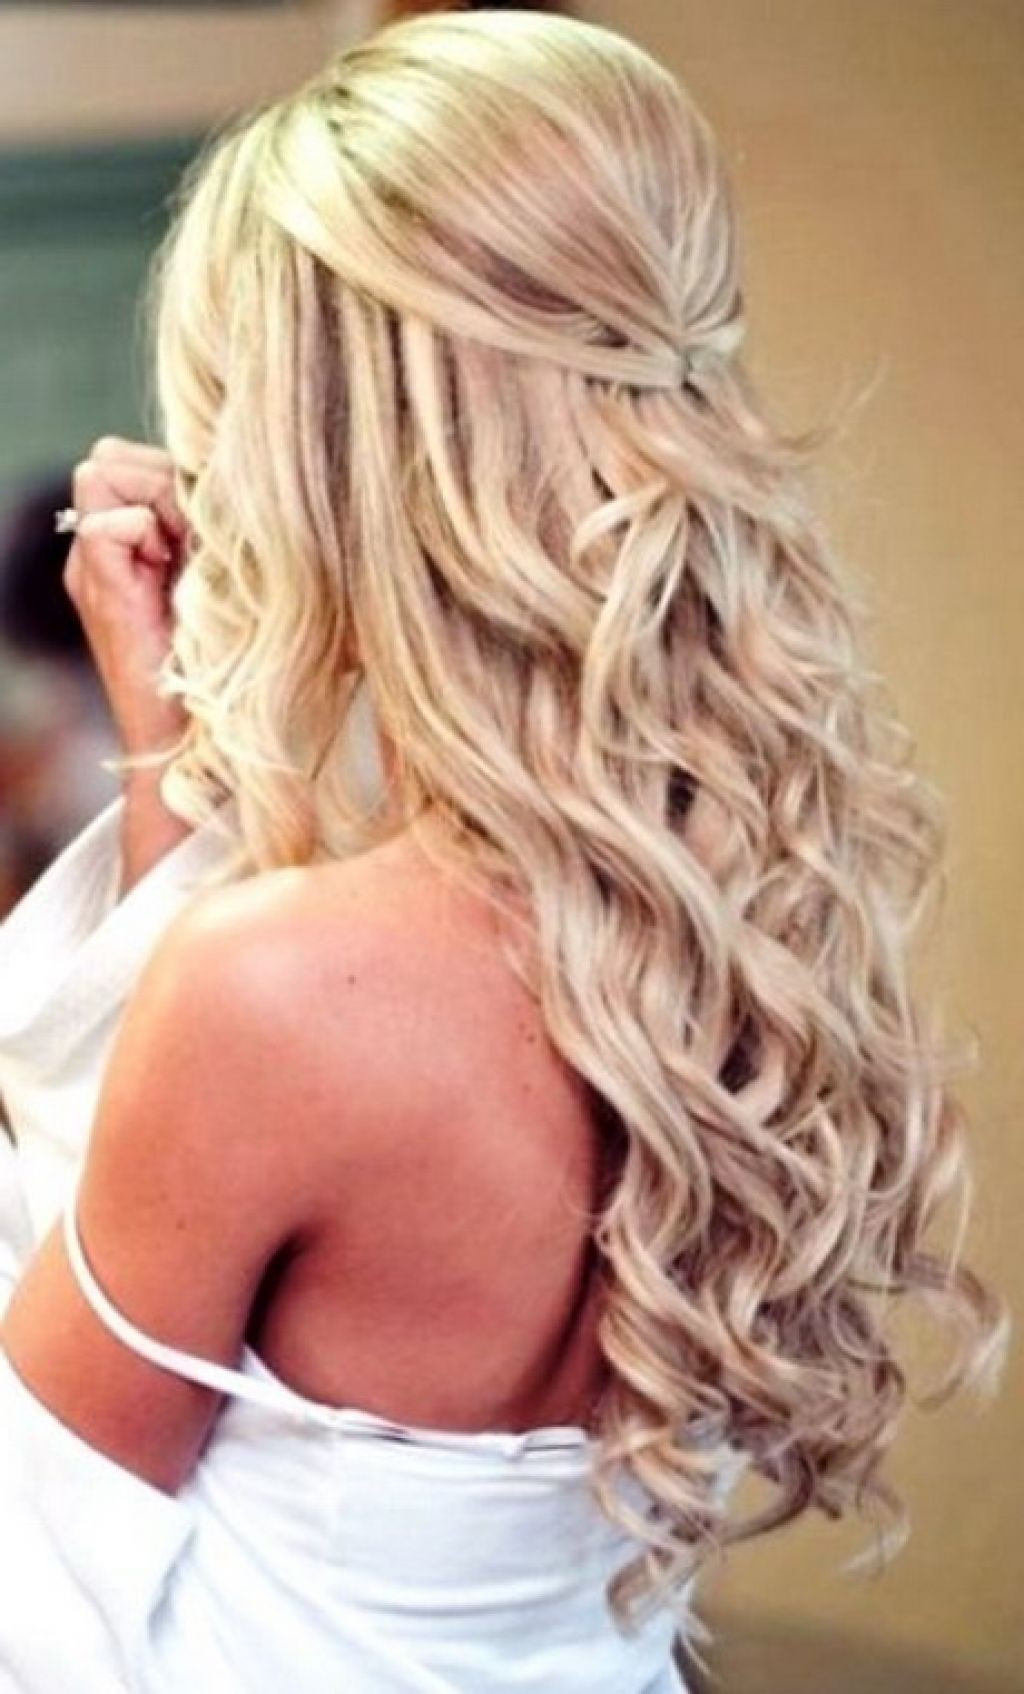 Best ideas about Shoulder Length Hairstyles For Prom . Save or Pin Hairstyles for prom medium length hair Hairstyle for Now.